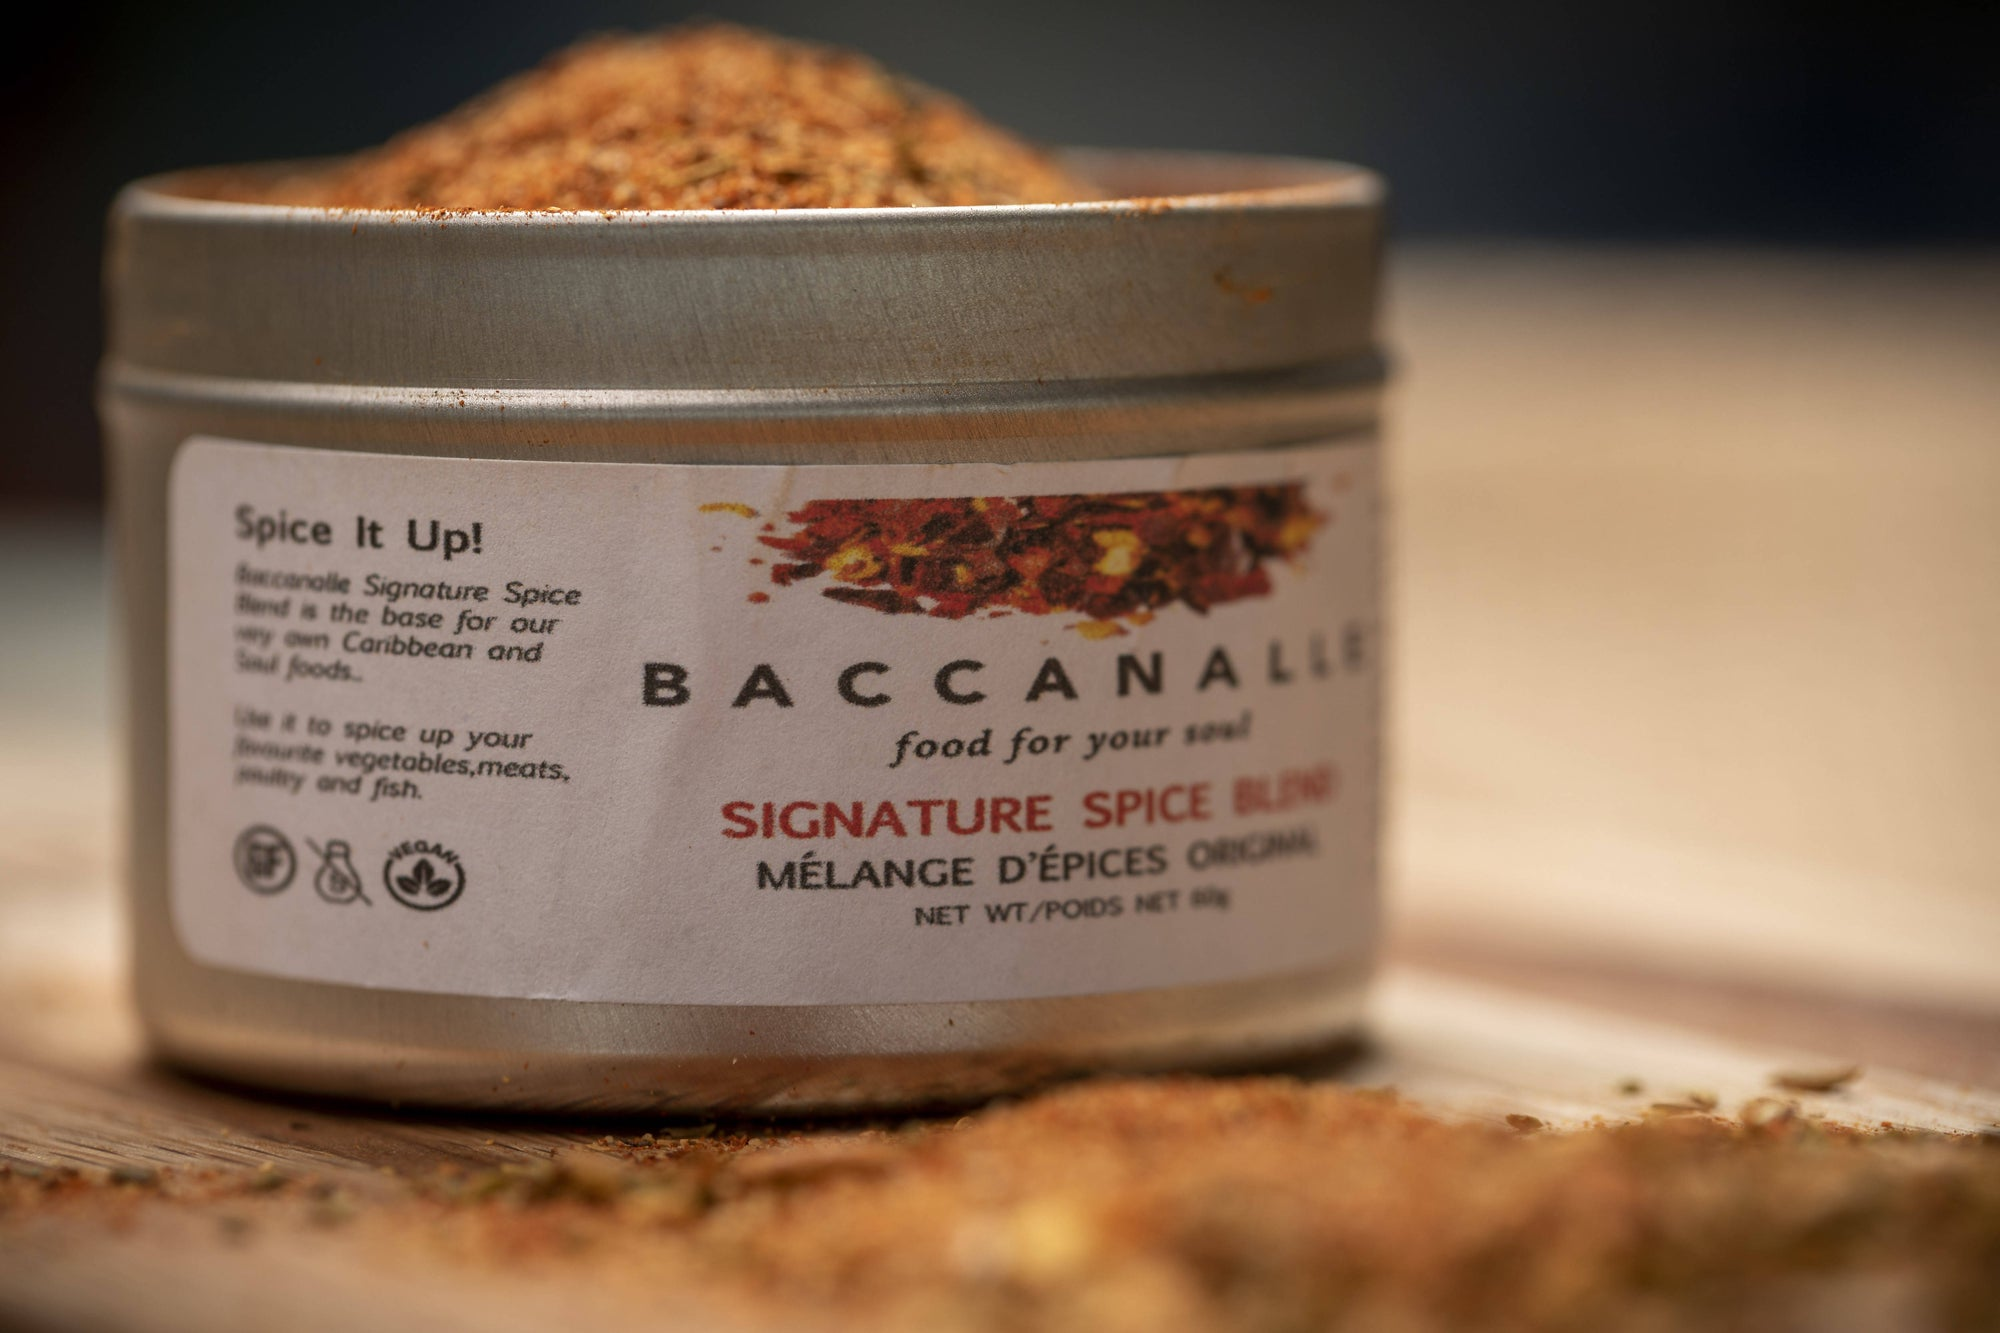 Baccanalle Signature Spice Blend